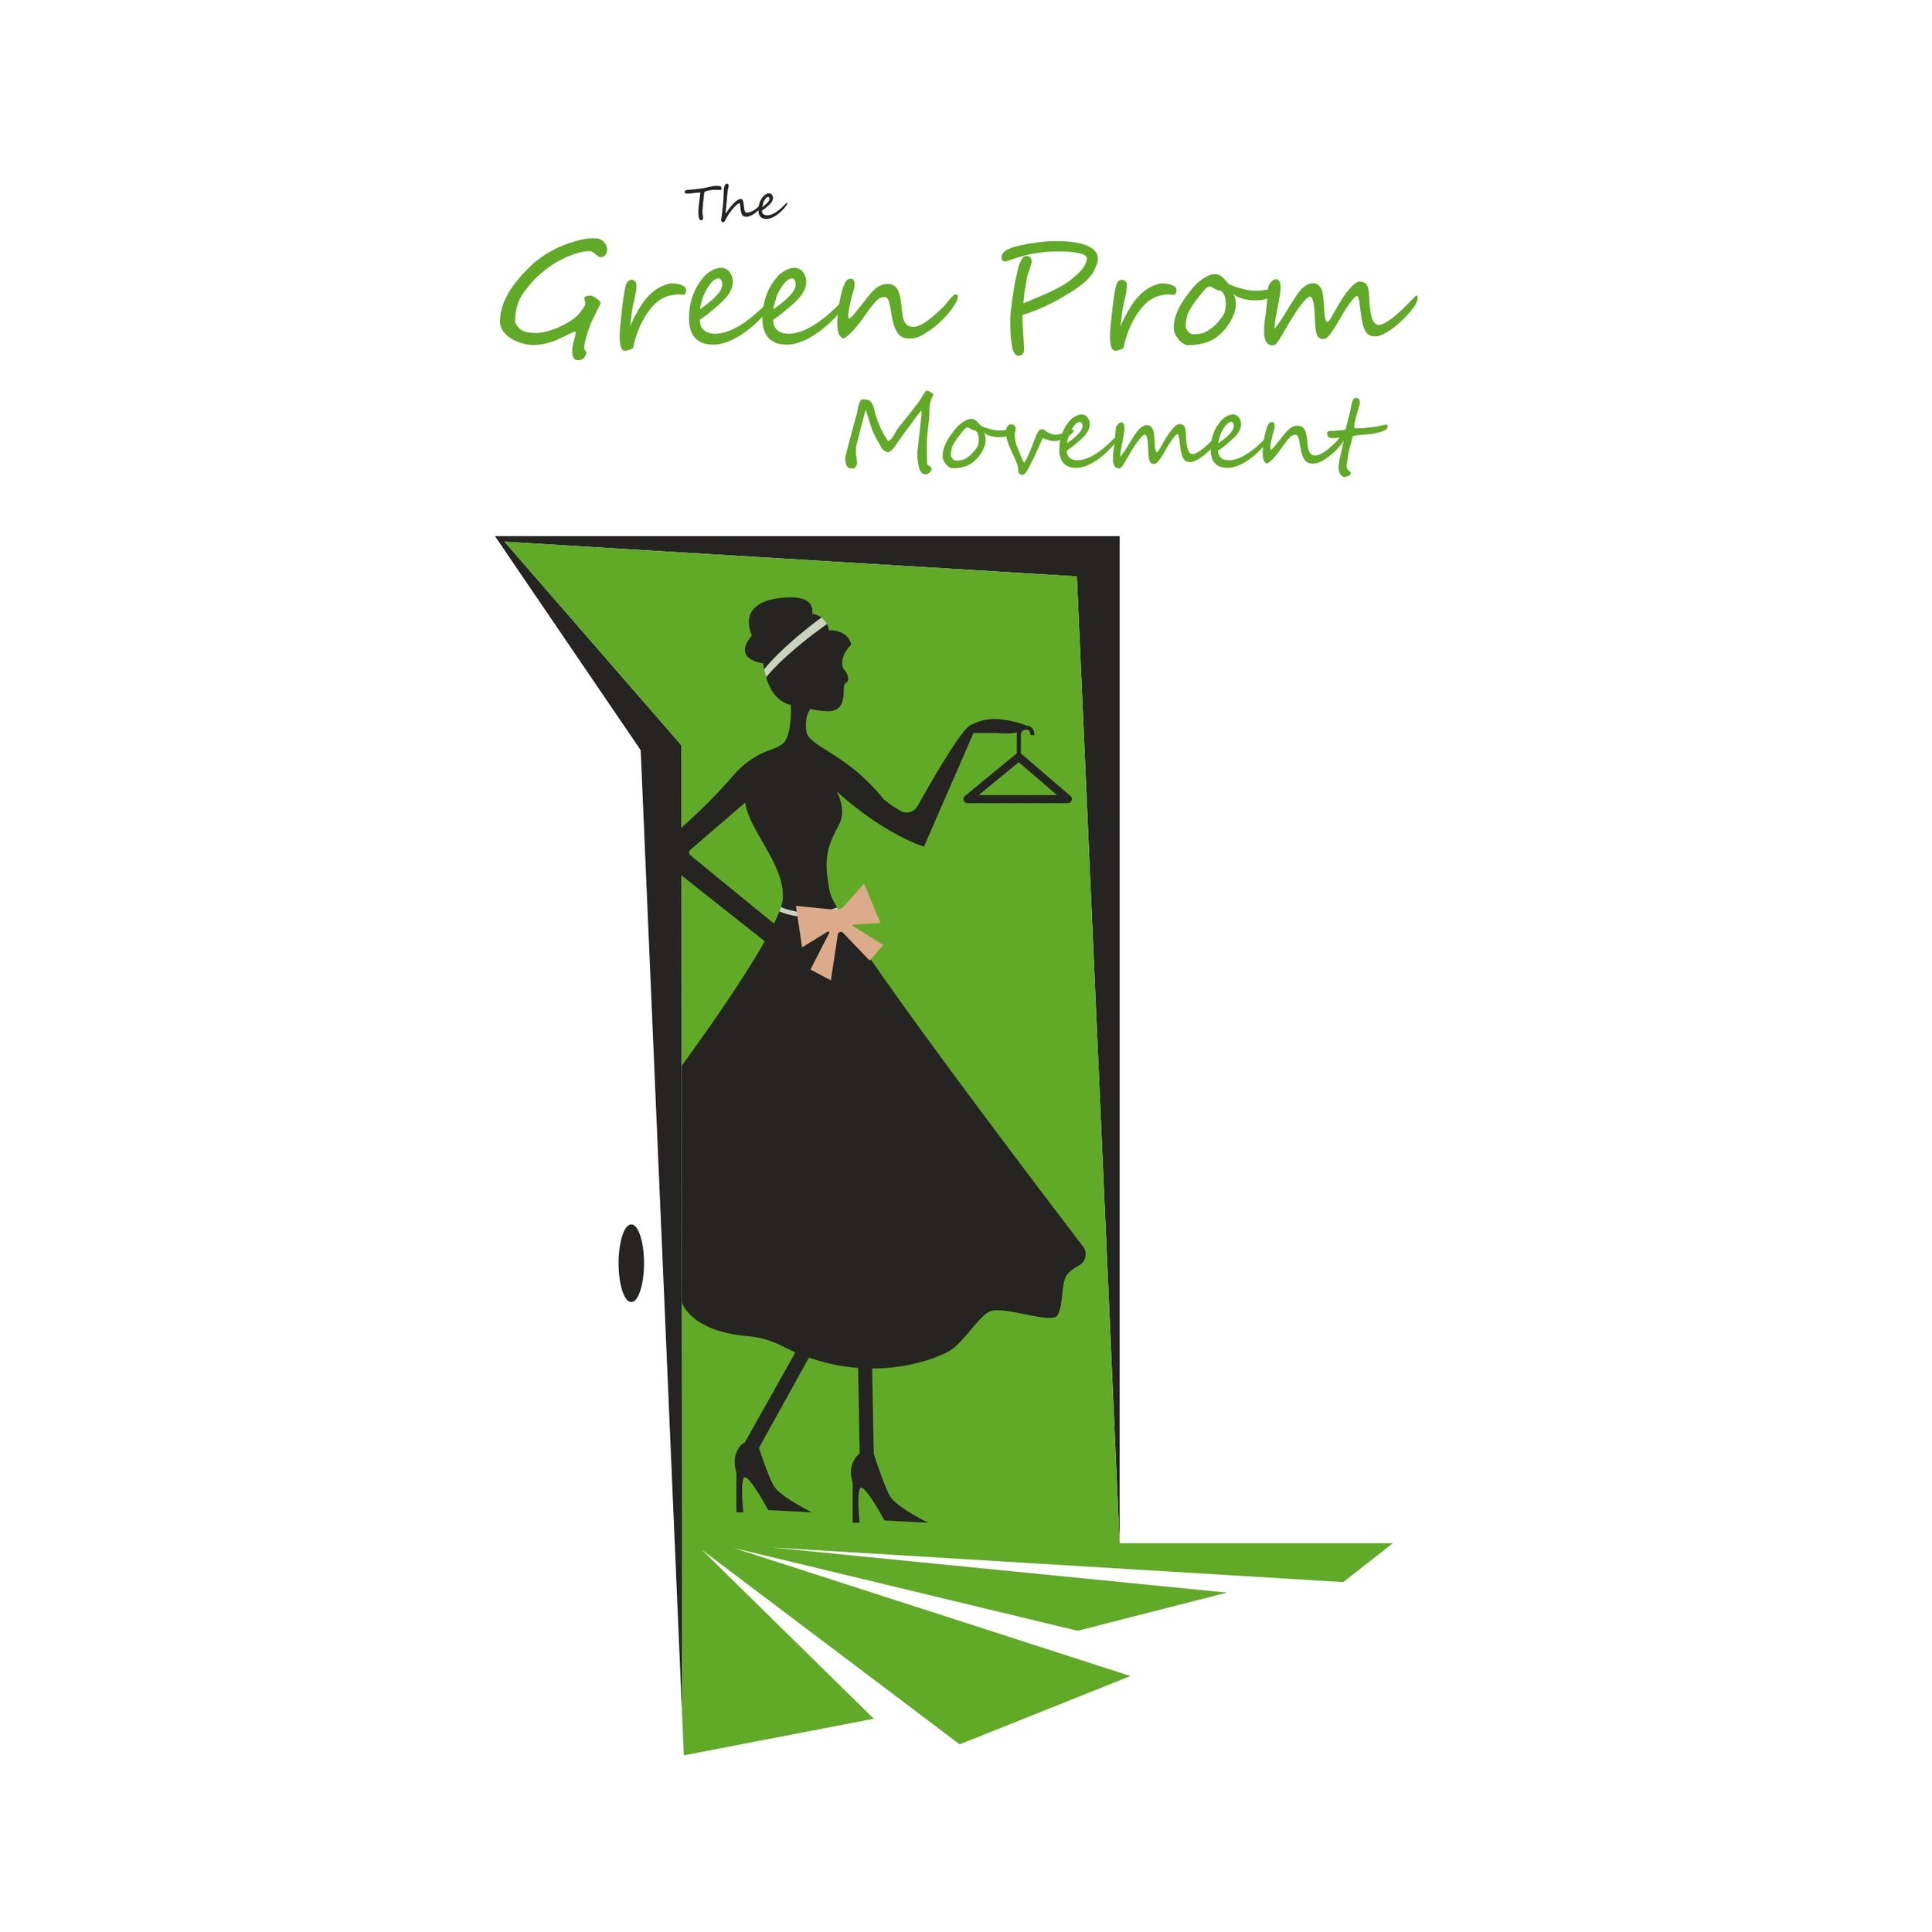 Green_Prom_Movement_PDF.jpg